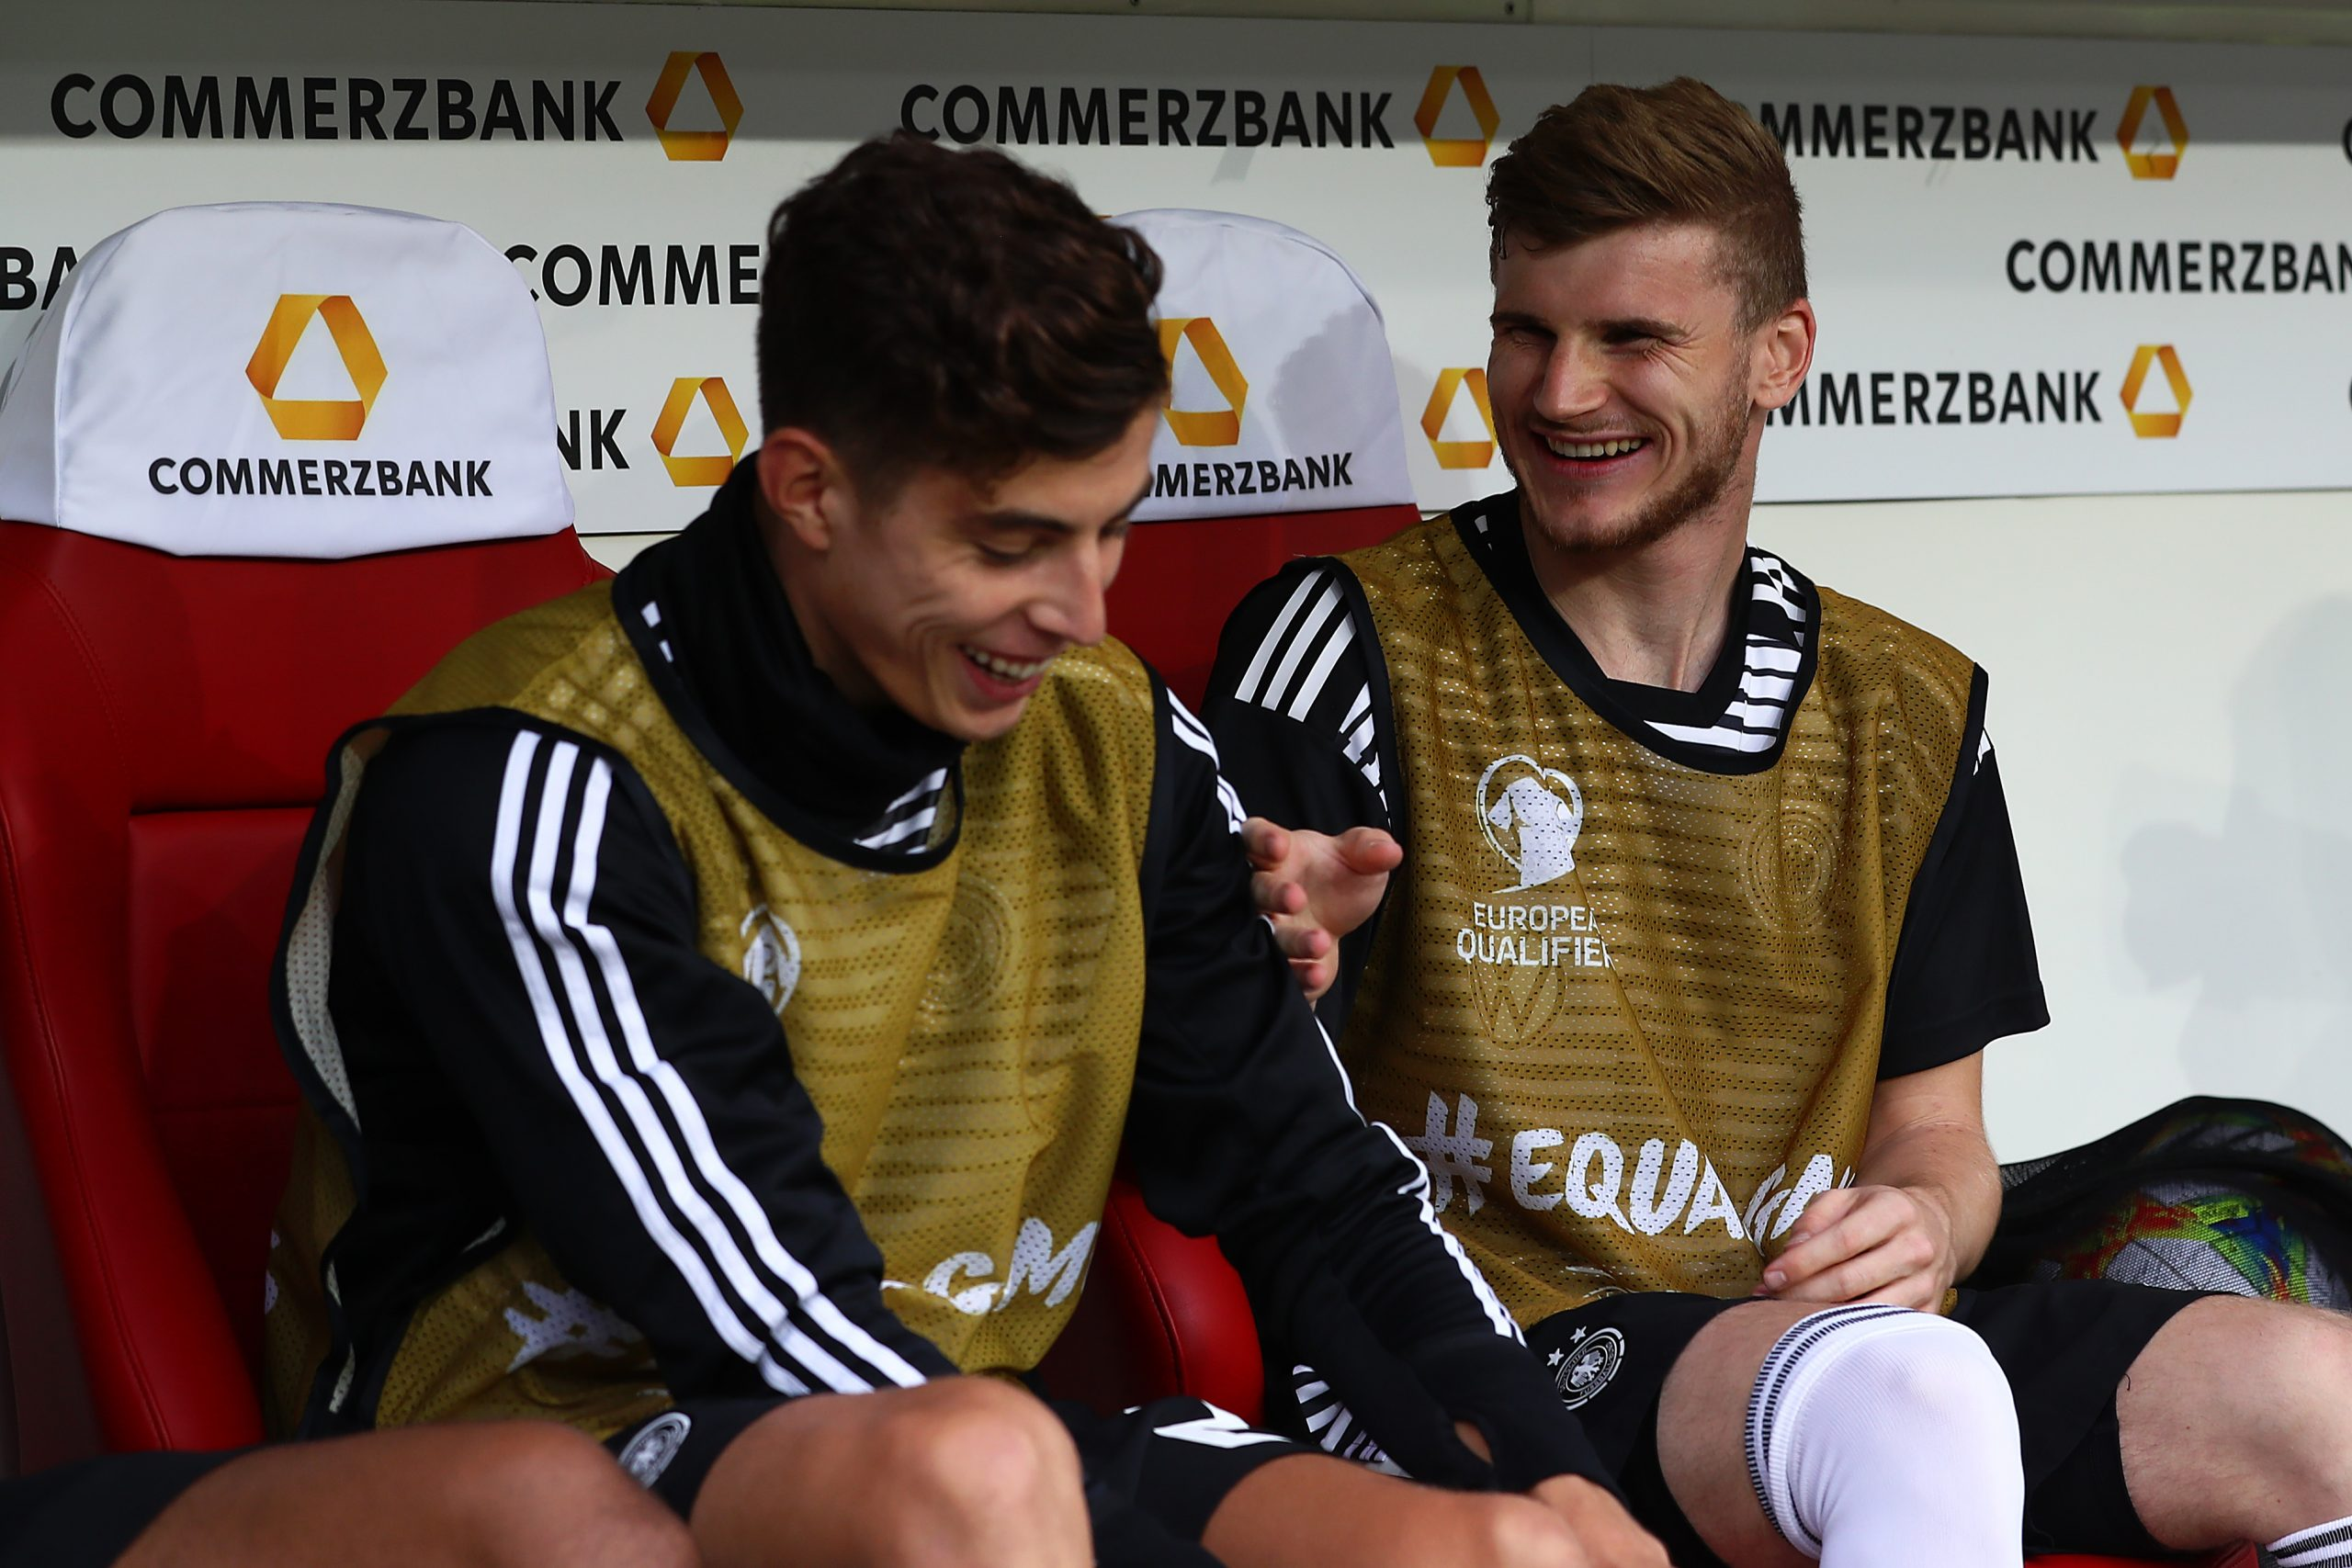 Kai Havertz revealed that international teammate Timo Werner texted him everyday to agree a deal with Chelsea. (GETTY Images)